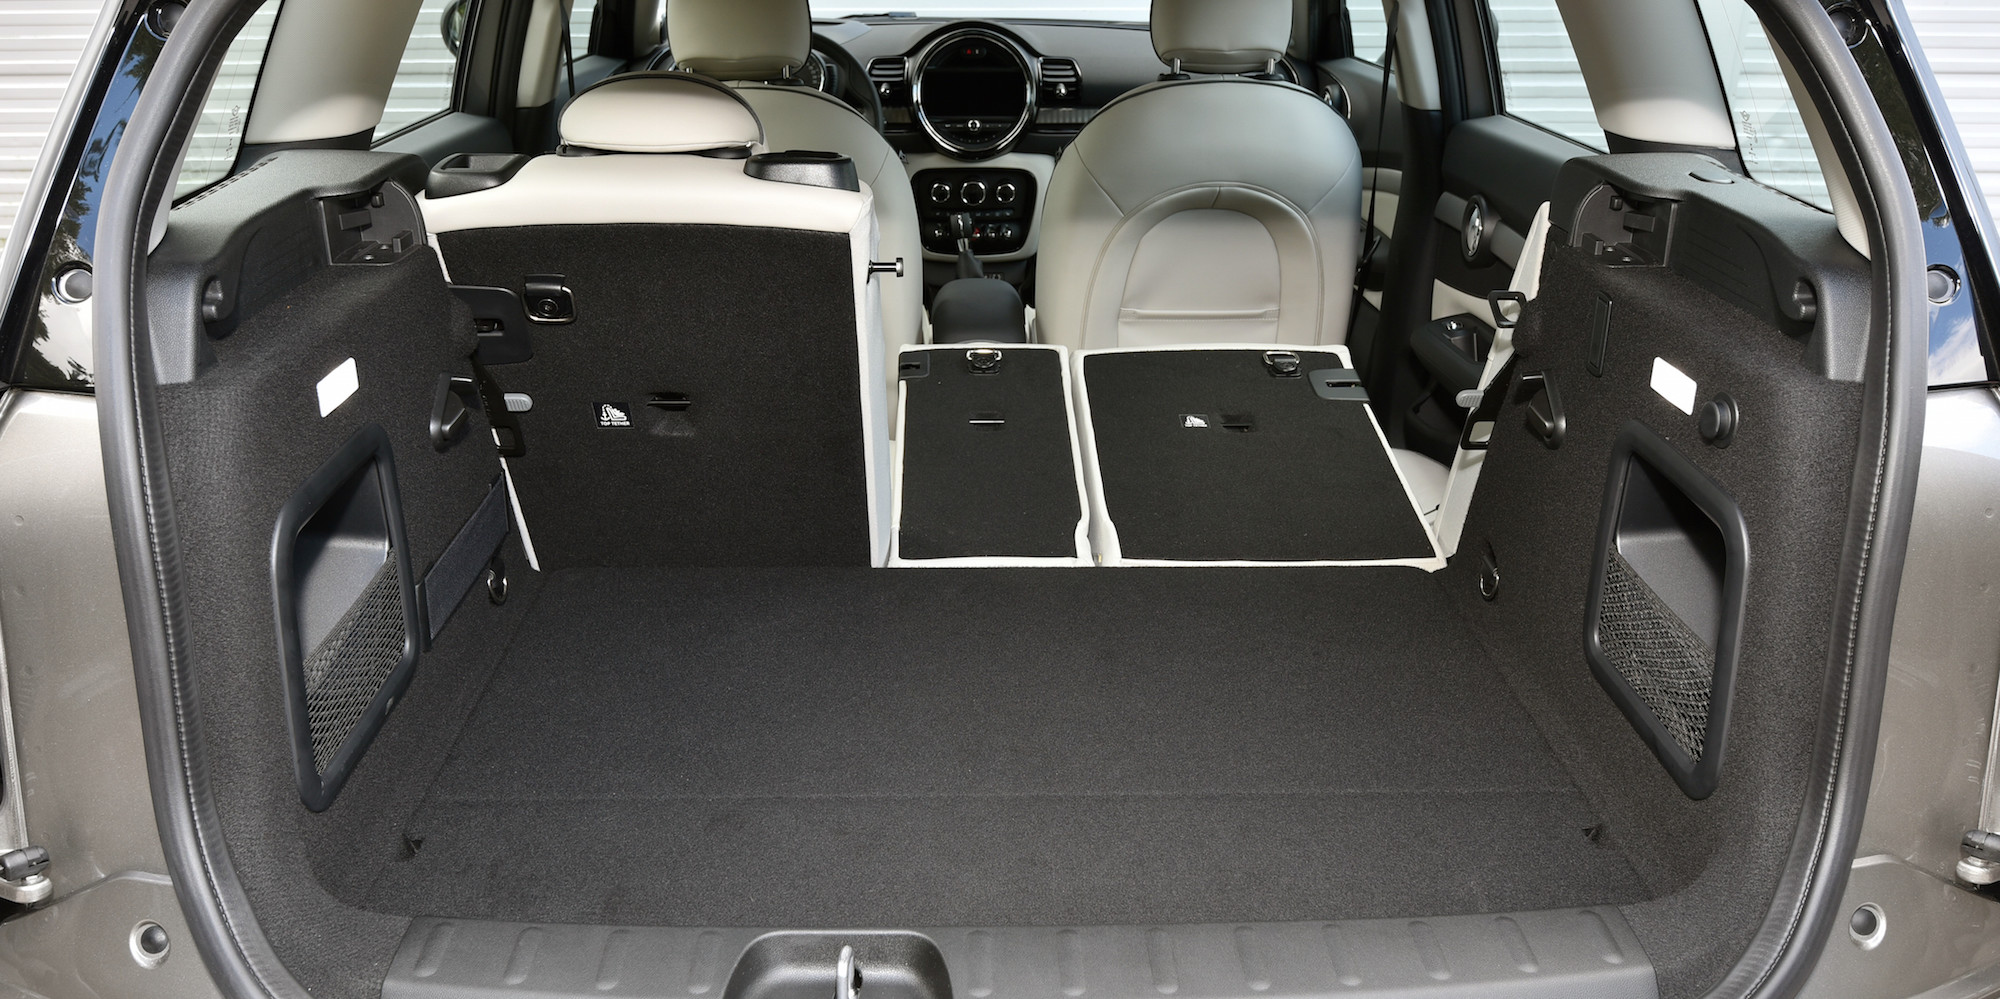 2016 Mini Cooper S Clubman Cargo Space (Photo 3 of 17)